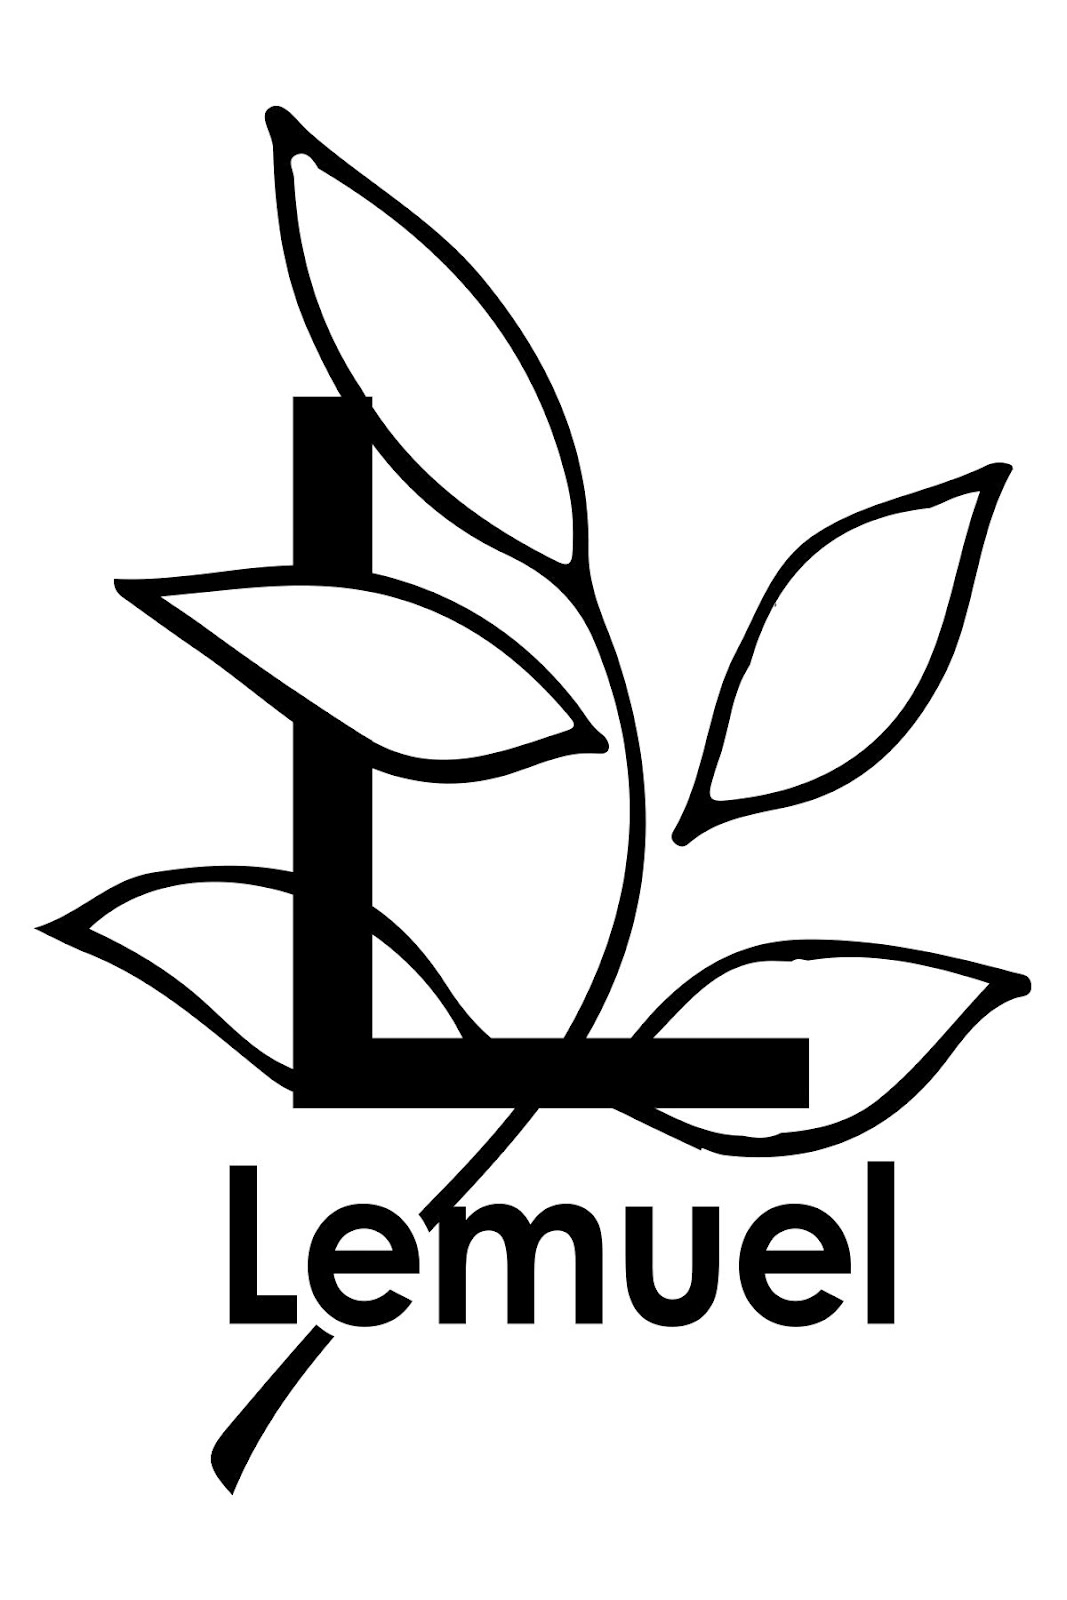 Lemuel Black and White Logo